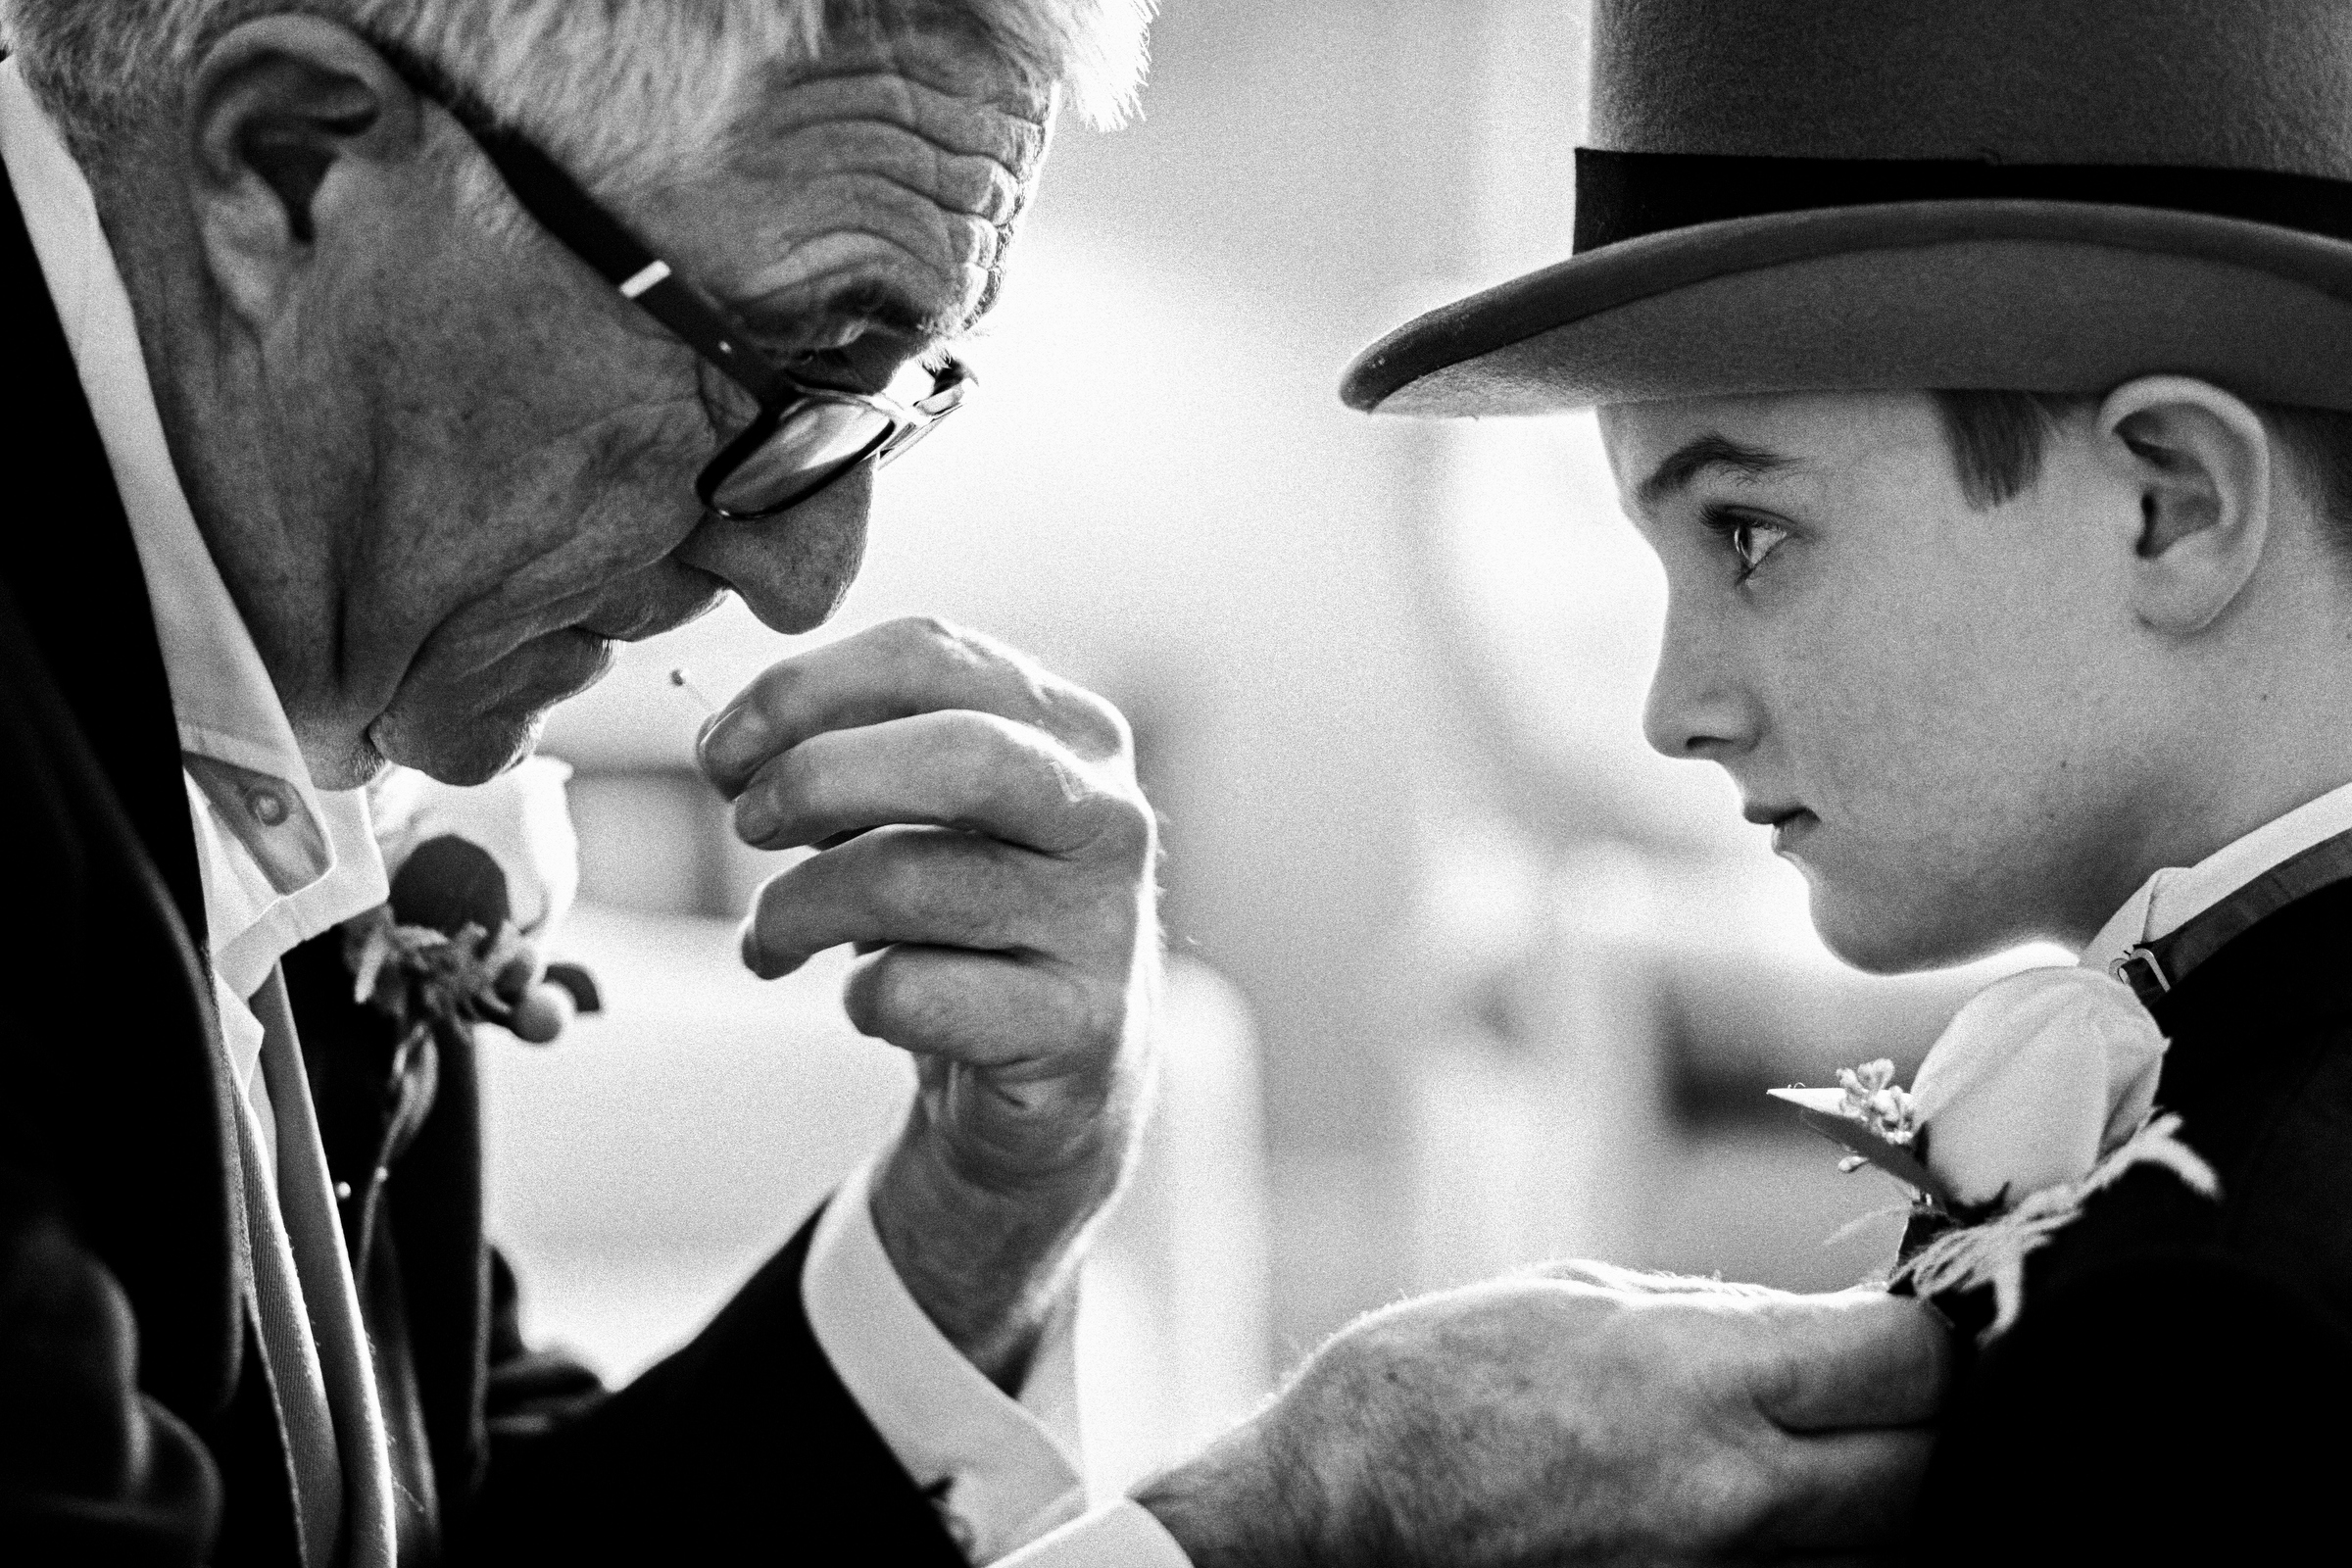 Grandfather pins on boutonniere of grandson wearing top hat - photo by Jeff Ascough